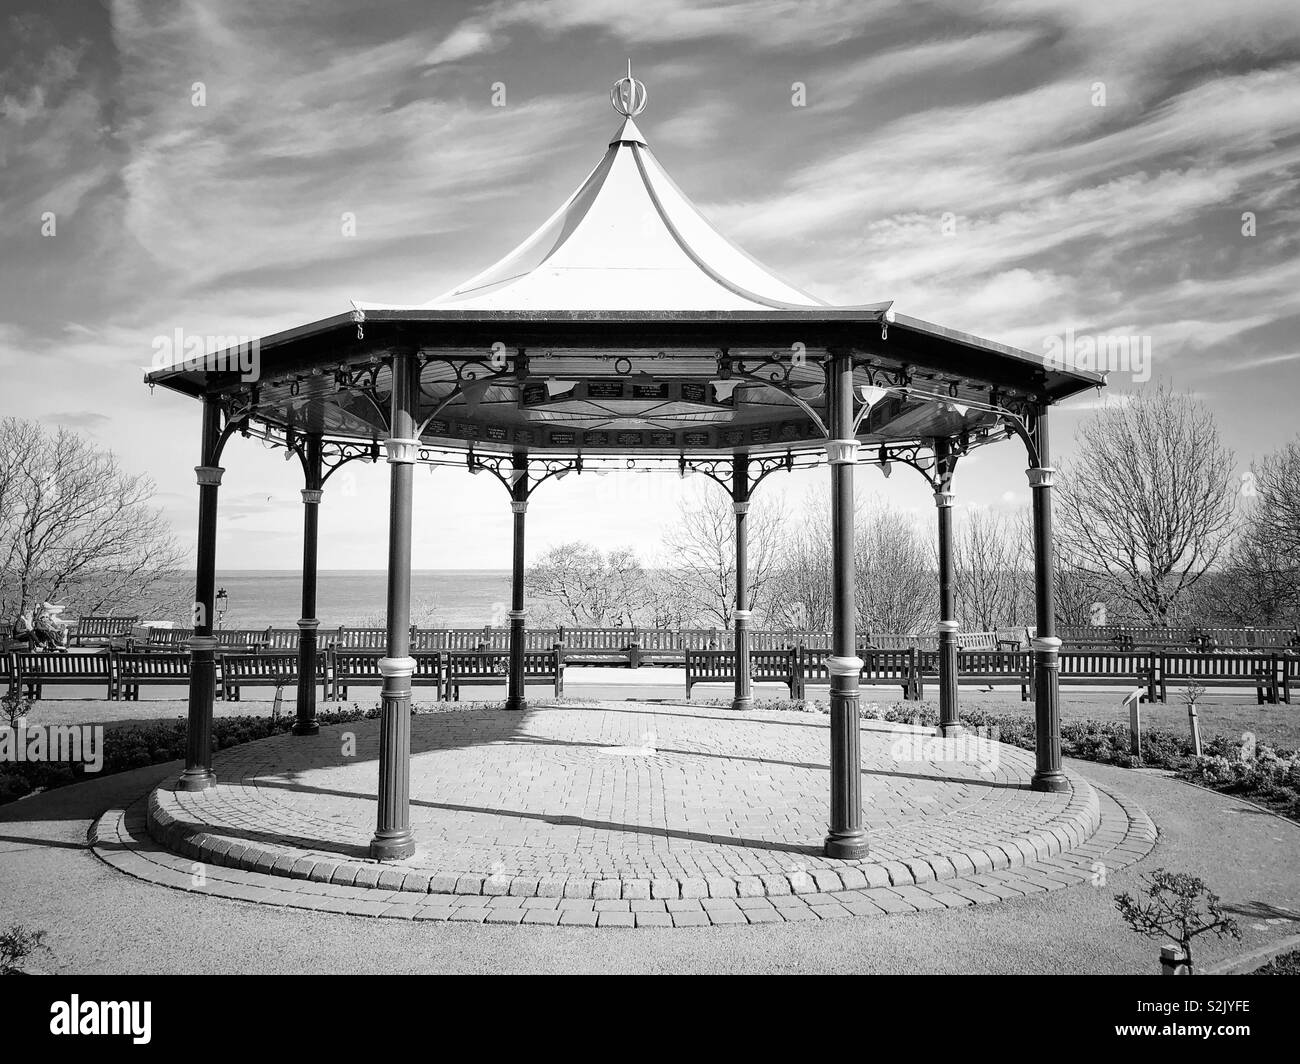 The bandstand in Crescent Gardens, Filey, UK. Black and white image - Stock Image